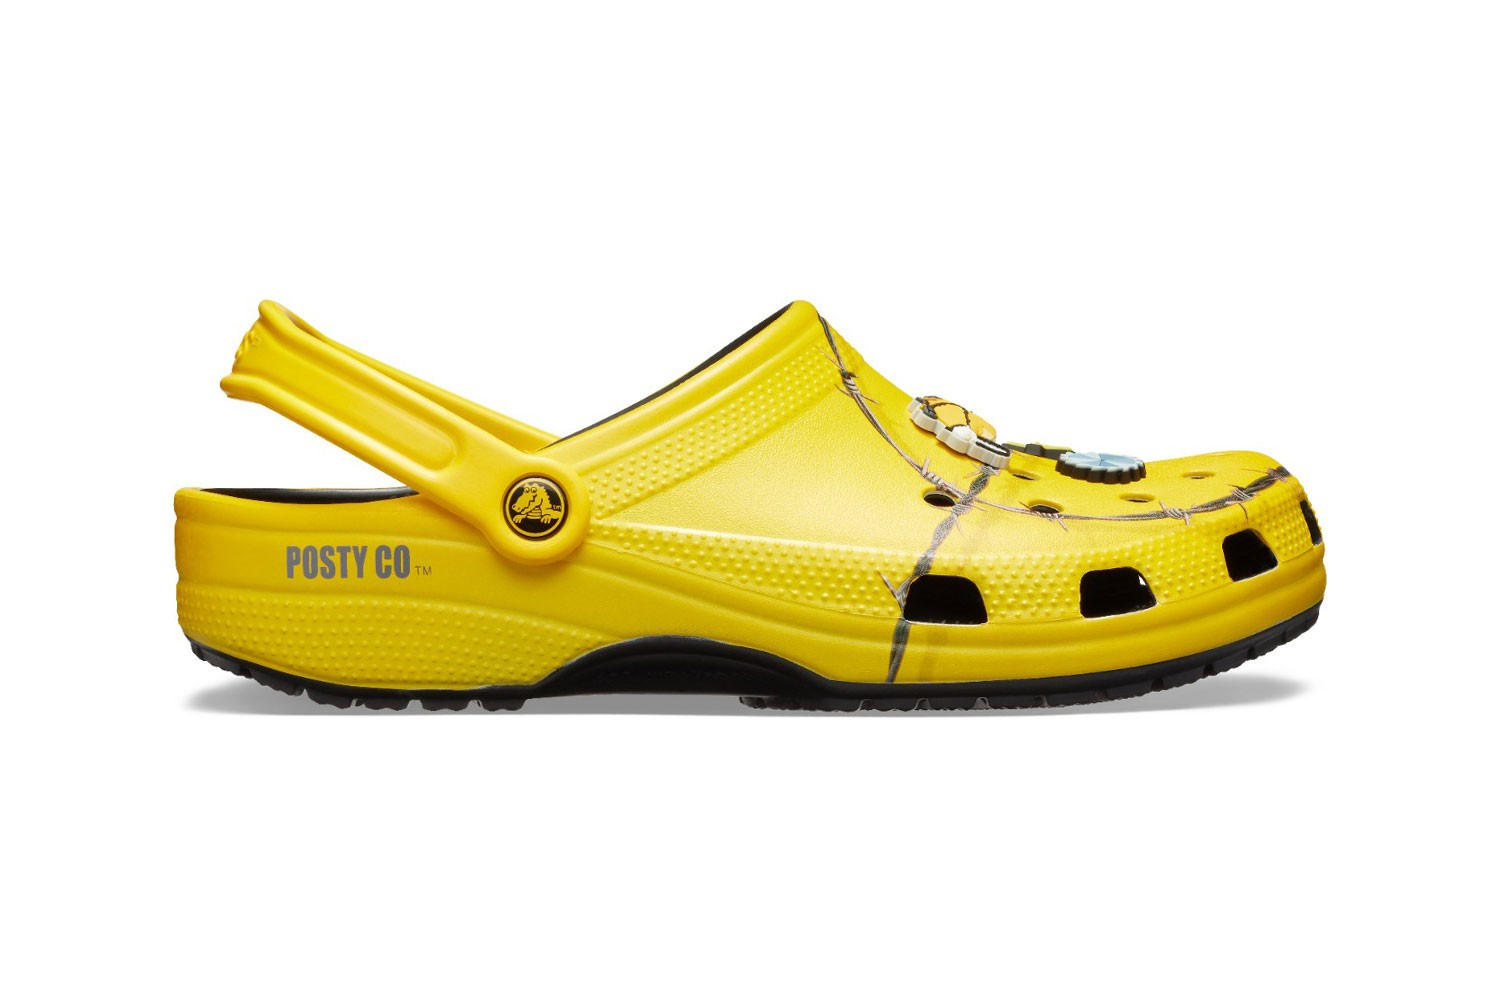 Best Crocs Collaborations PizzaSlime post malone Balenciaga alife christopher kane crocday croc day #crocday 2019 alife barneys new york beams chinatown market collaborations pleasures christopher kane